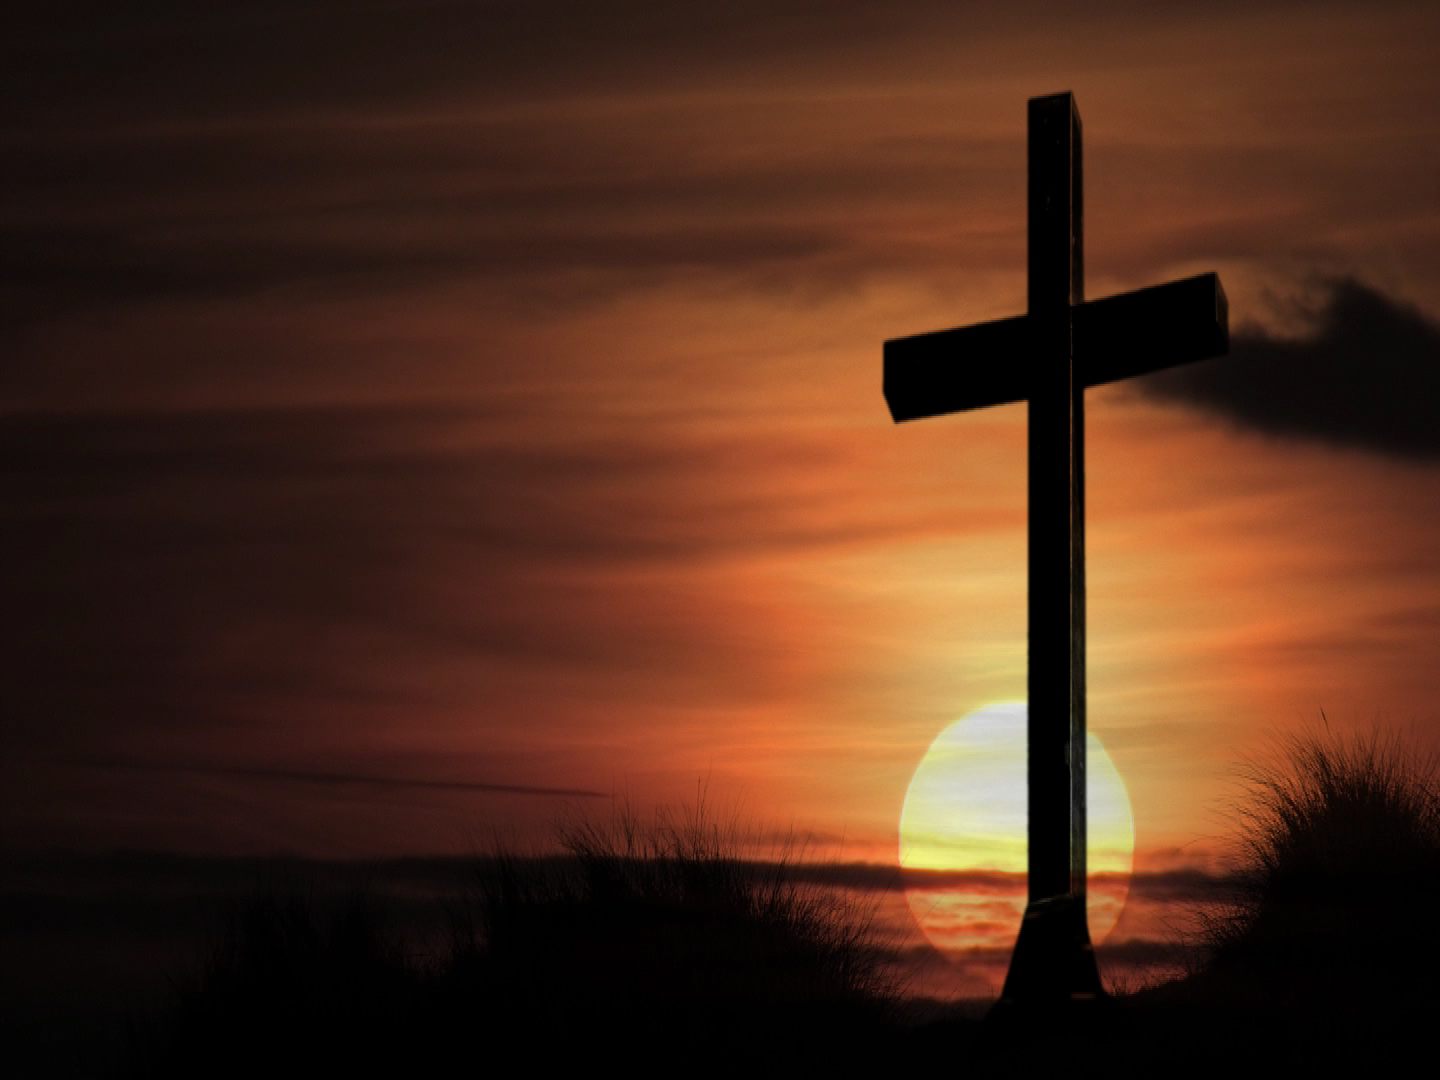 Christian Photography Cross On Sunset Wallpaper   Christian 1440x1080